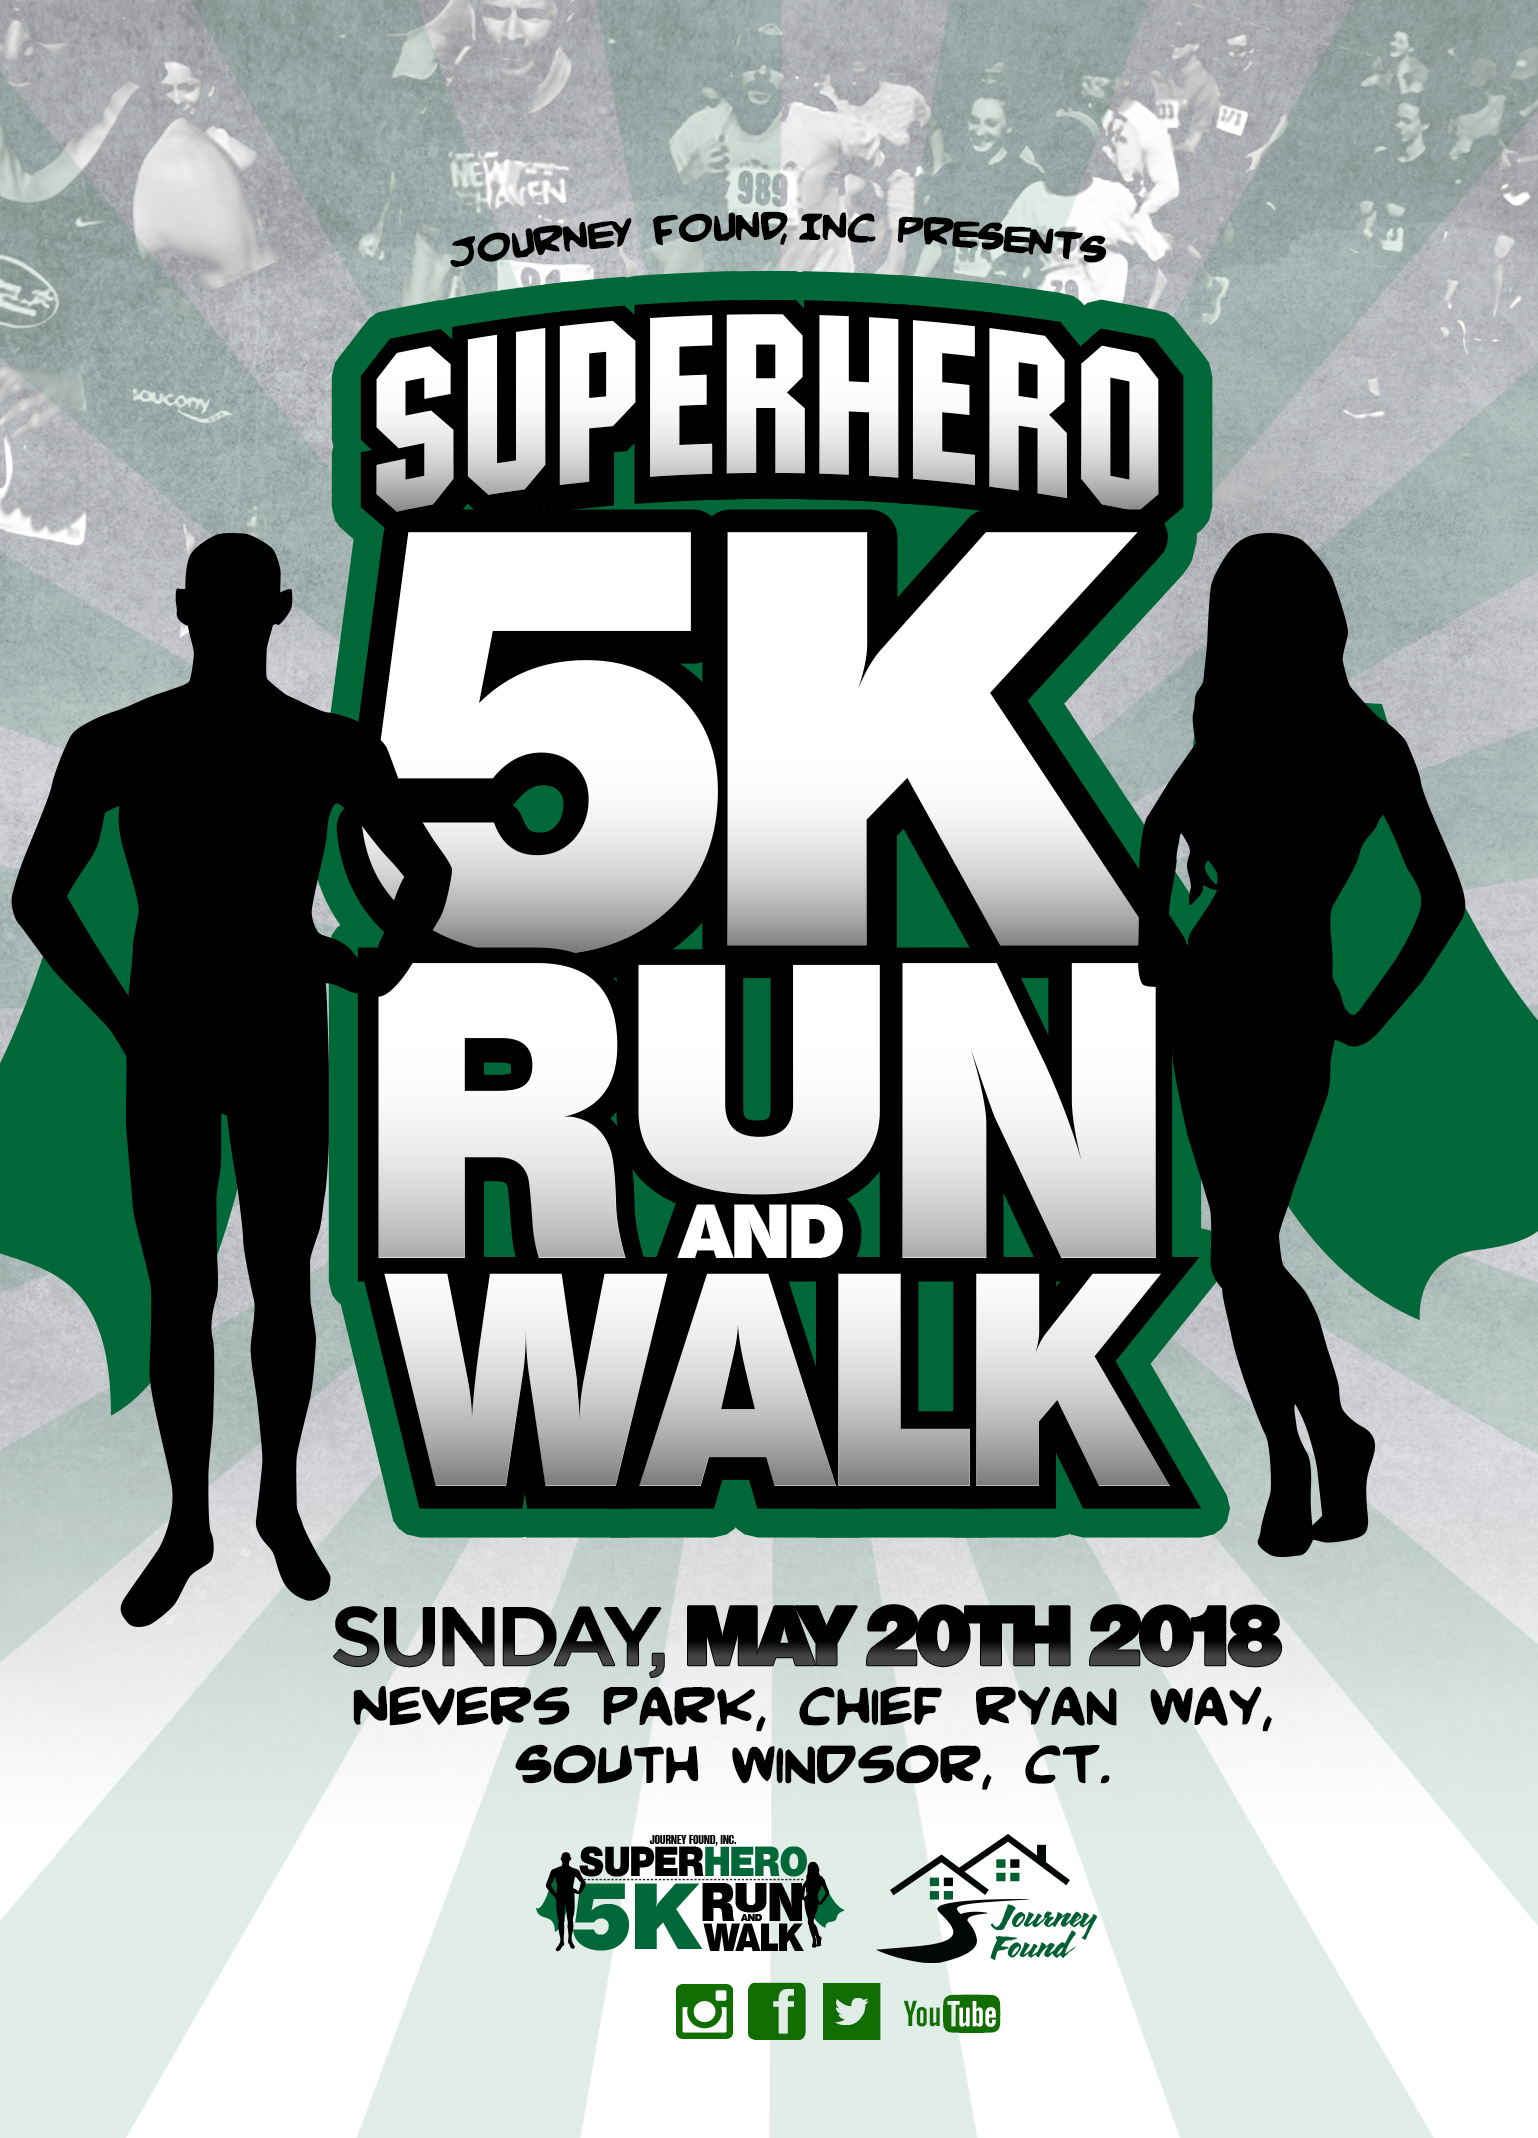 superhero 5k run walk for disabilities journey found